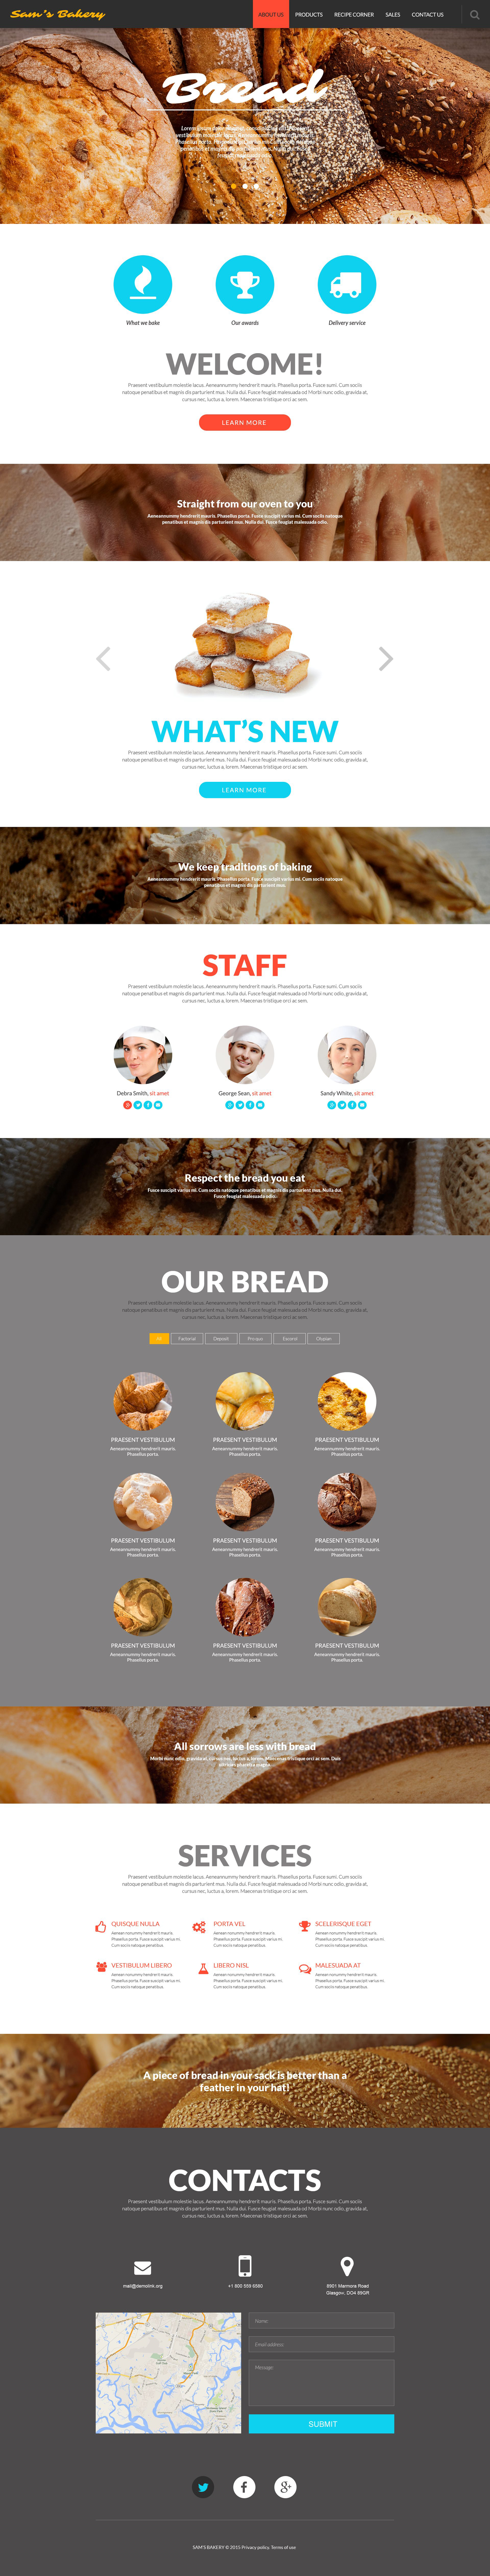 The Sam Bakery Bread Bootstrap Design 53200, one of the best website templates of its kind (food & drink, most popular), also known as Sam bakery bread website template, bakery website template, products website template, chocolate website template, cake website template, biscuit website template, filling website template, tasty website template, delicious website template, wedding website template, celebration website template, birthday website template, fruits website template, sweets website template, cookies website template, specials website template, receipts website template, pastry website template, fancy website template, tarts website template, custard website template, cream website template, cookery website template, experts website template, masters website template, services website template, order website template, quotes website template, delivery website template, staff and related with Sam bakery bread, bakery, products, chocolate, cake, biscuit, filling, tasty, delicious, wedding, celebration, birthday, fruits, sweets, cookies, specials, receipts, pastry, fancy, tarts, custard, cream, cookery, experts, masters, services, order, quotes, delivery, staff, etc.